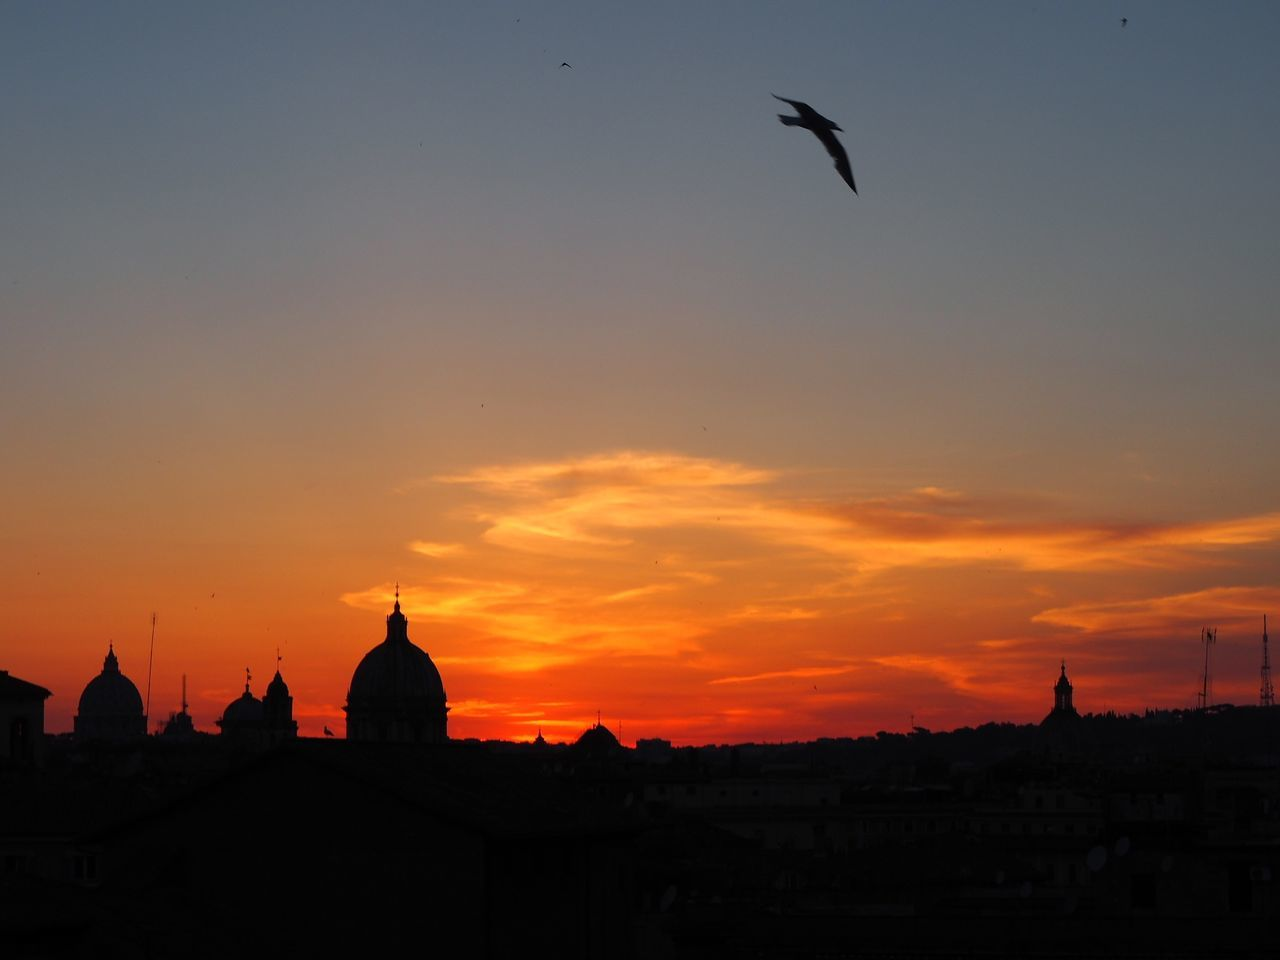 sunset, architecture, silhouette, flying, building exterior, no people, sky, city, outdoors, nature, bird